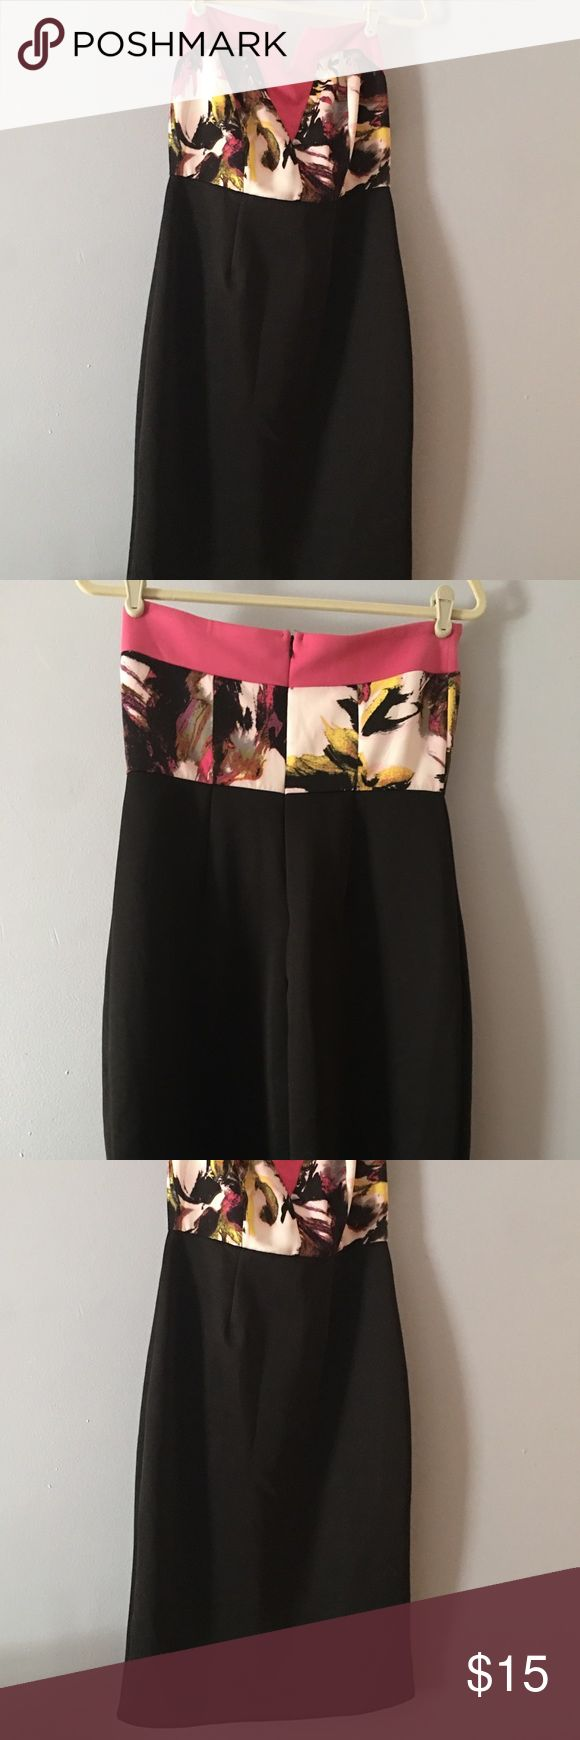 Ashley Stewart Bodycon Dress BRAND NEW Size 12 Ashley Stewart patterned bodycon dress. Hits at just above knee length on me(I'm 5'8). Fit too tight for me so I never wore it! Ashley Stewart Dresses Midi